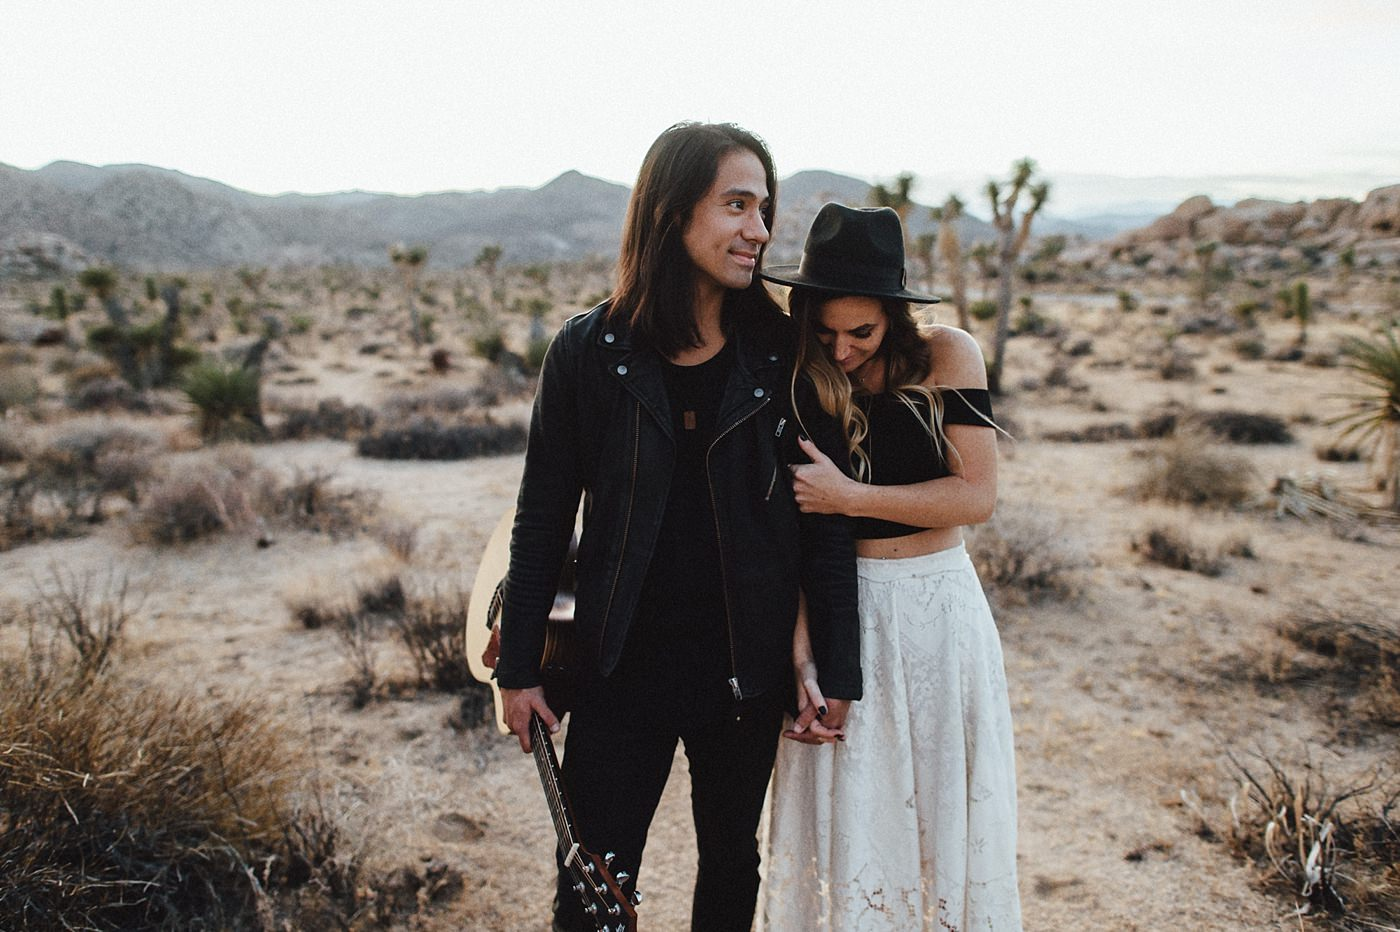 international-elopement-photographer_0210 Kinsey & Josh & Banjo Photographer in Joshuatreeinternational elopement photographer 0210